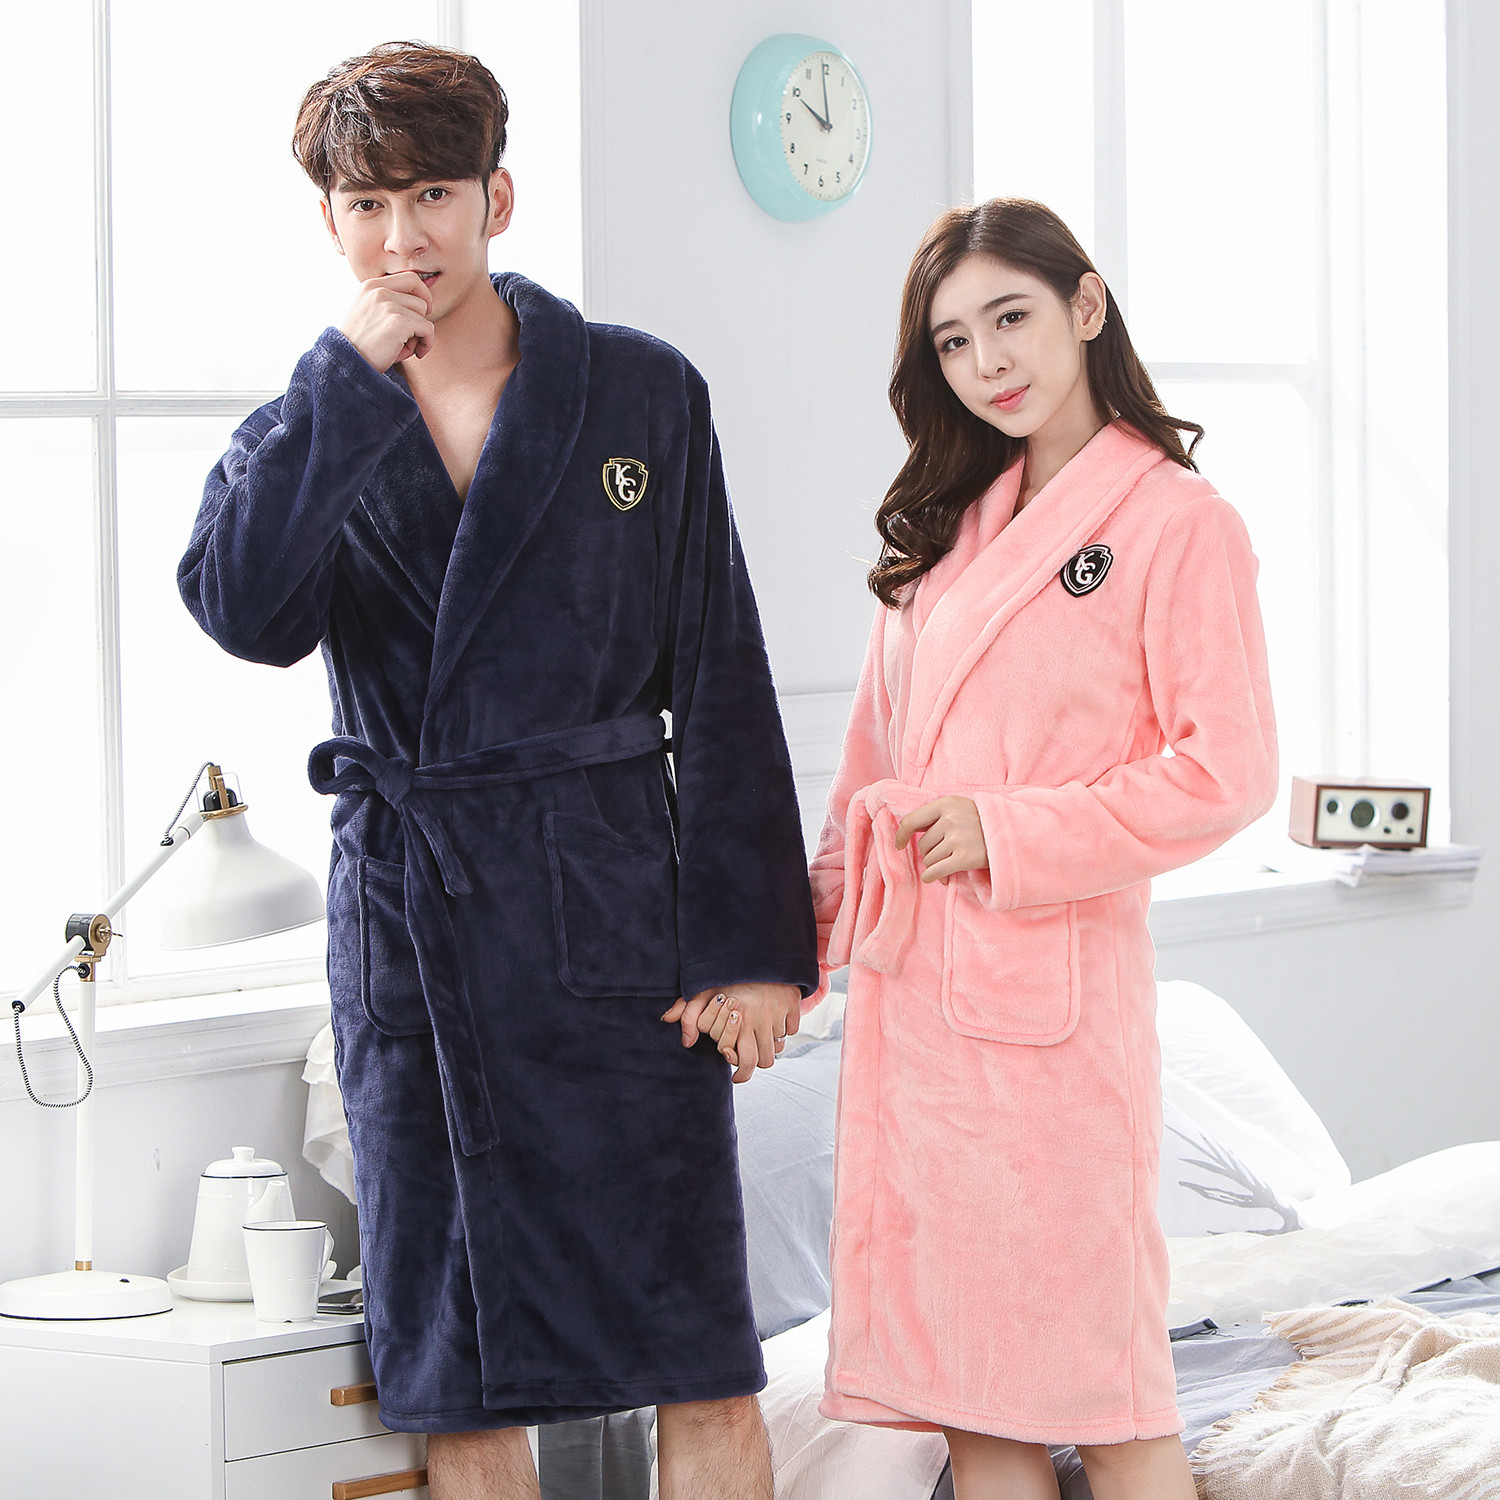 V-neck Sleepwear Full Sleeve Solid Colour Home Dressing Gown Intimate Lingerie Bathrobe Gown For Men&women Plus Size 3XL